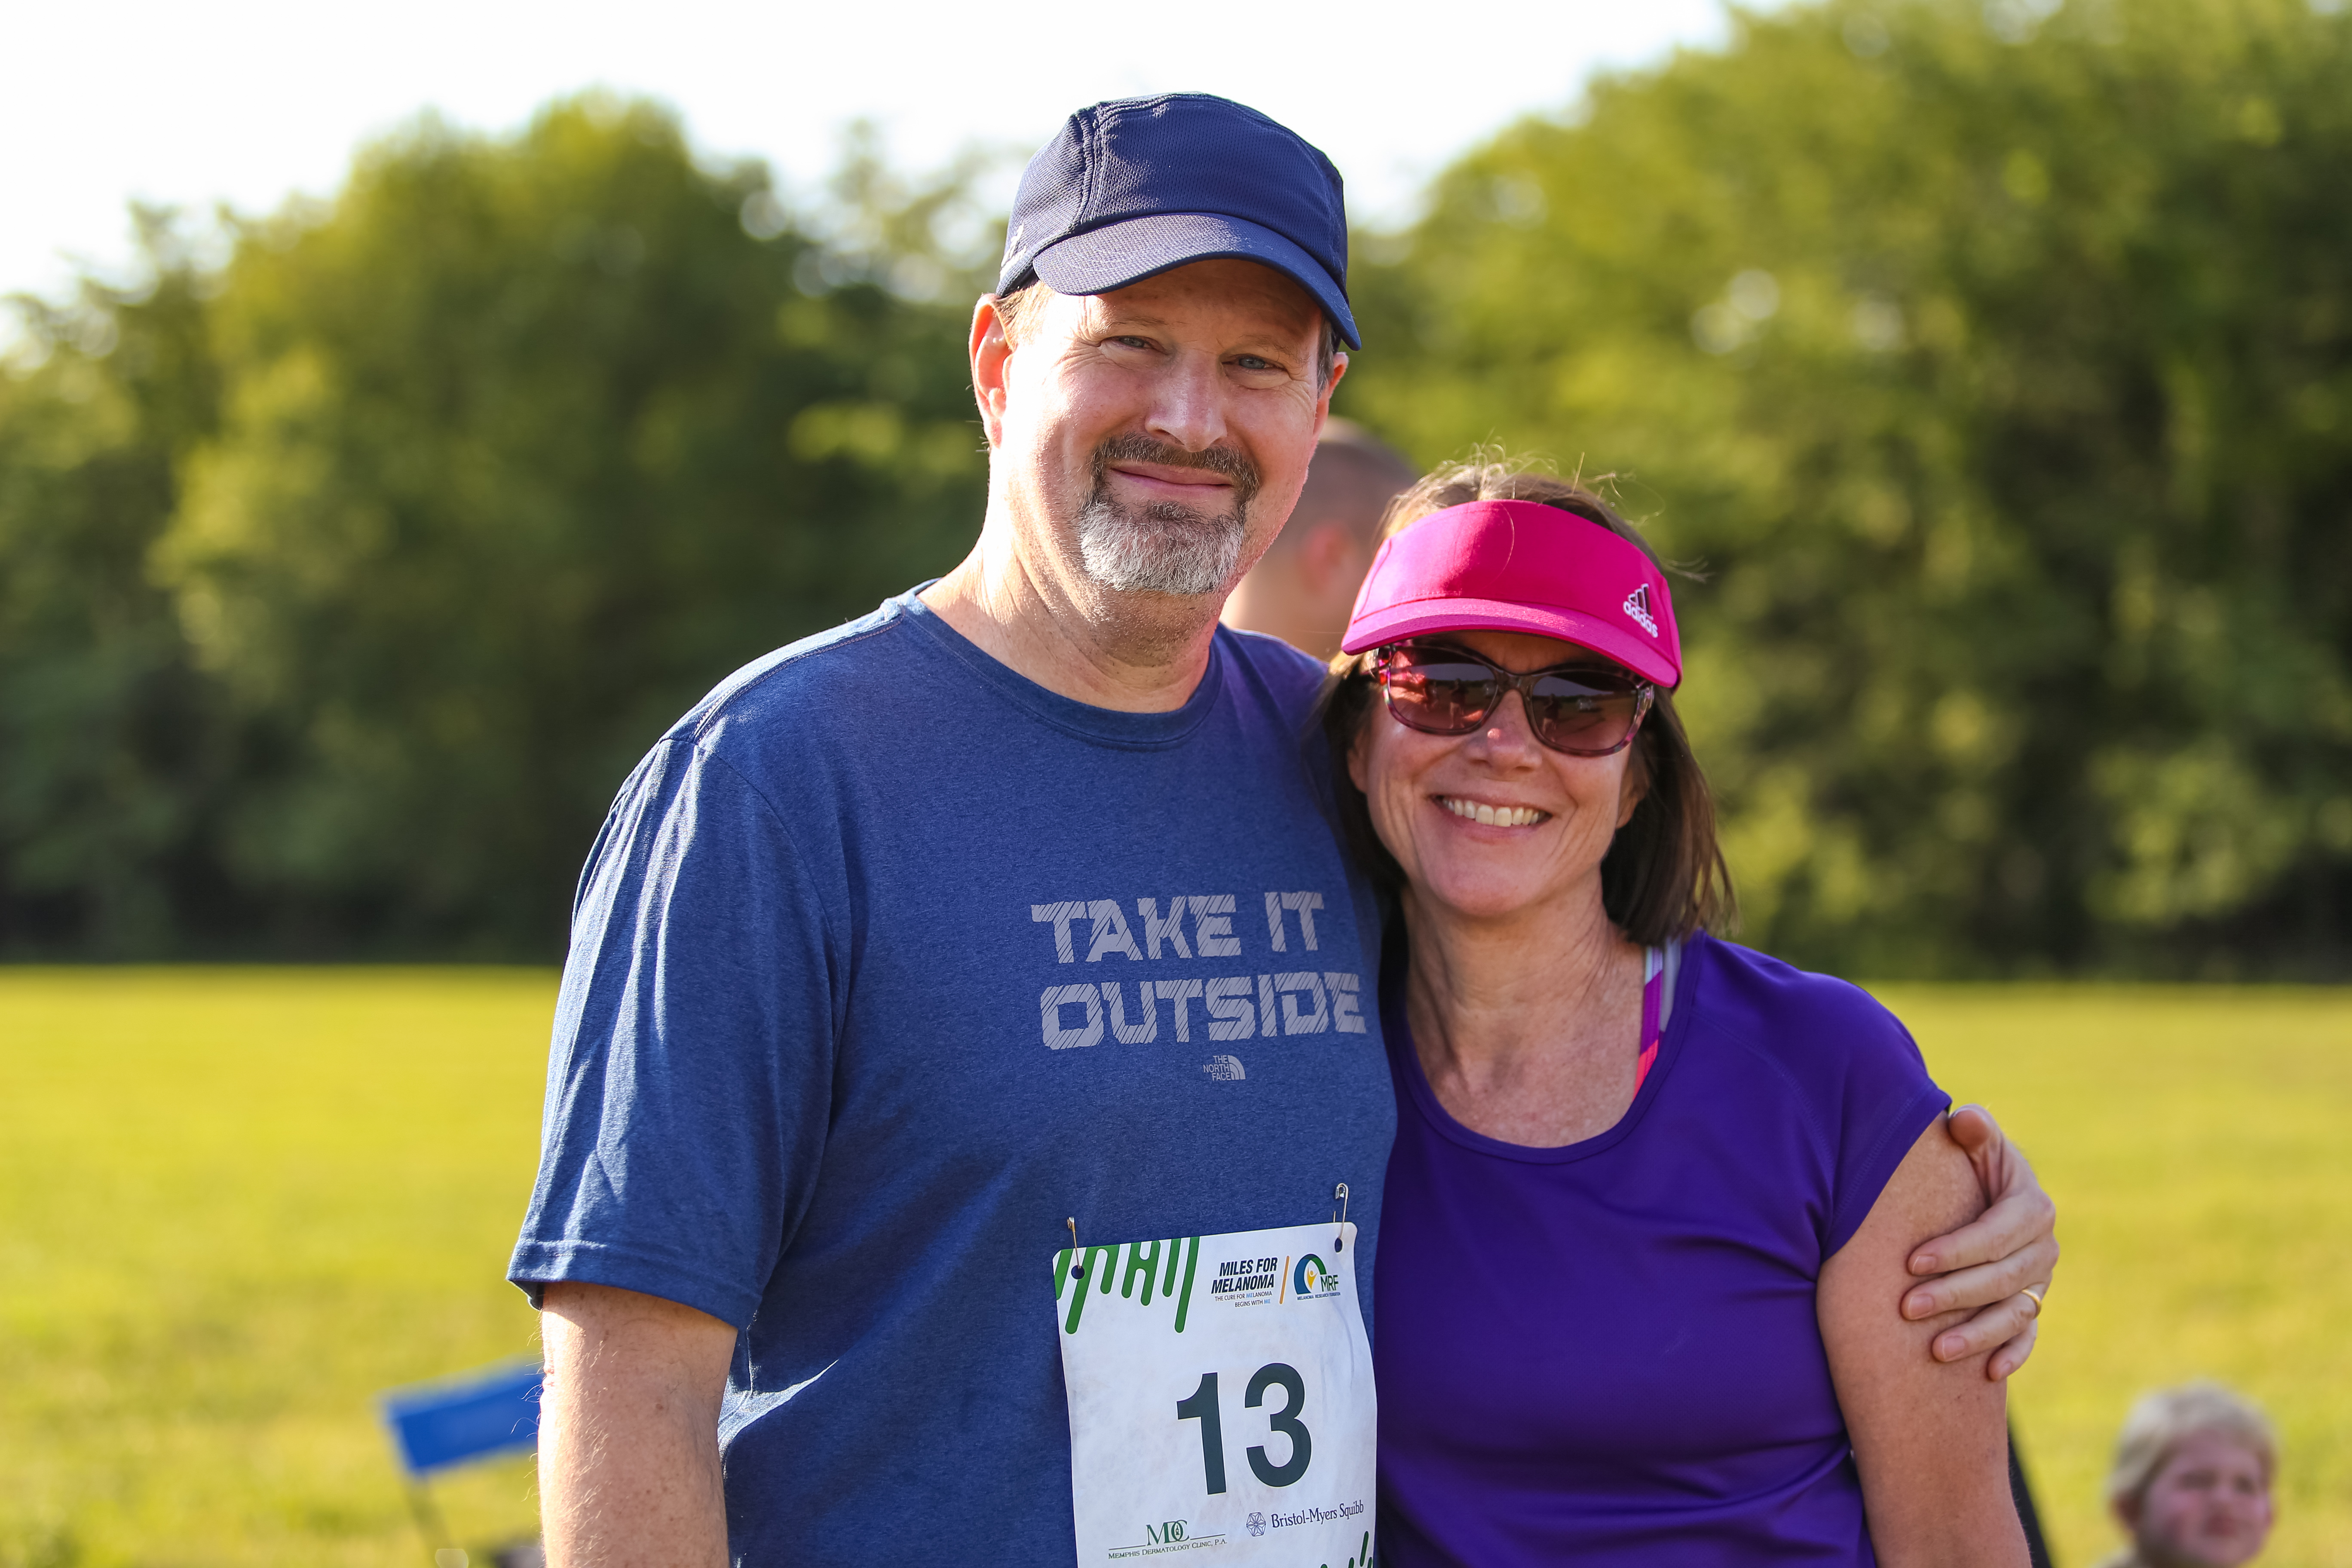 The author and his wife smiling in running clothes